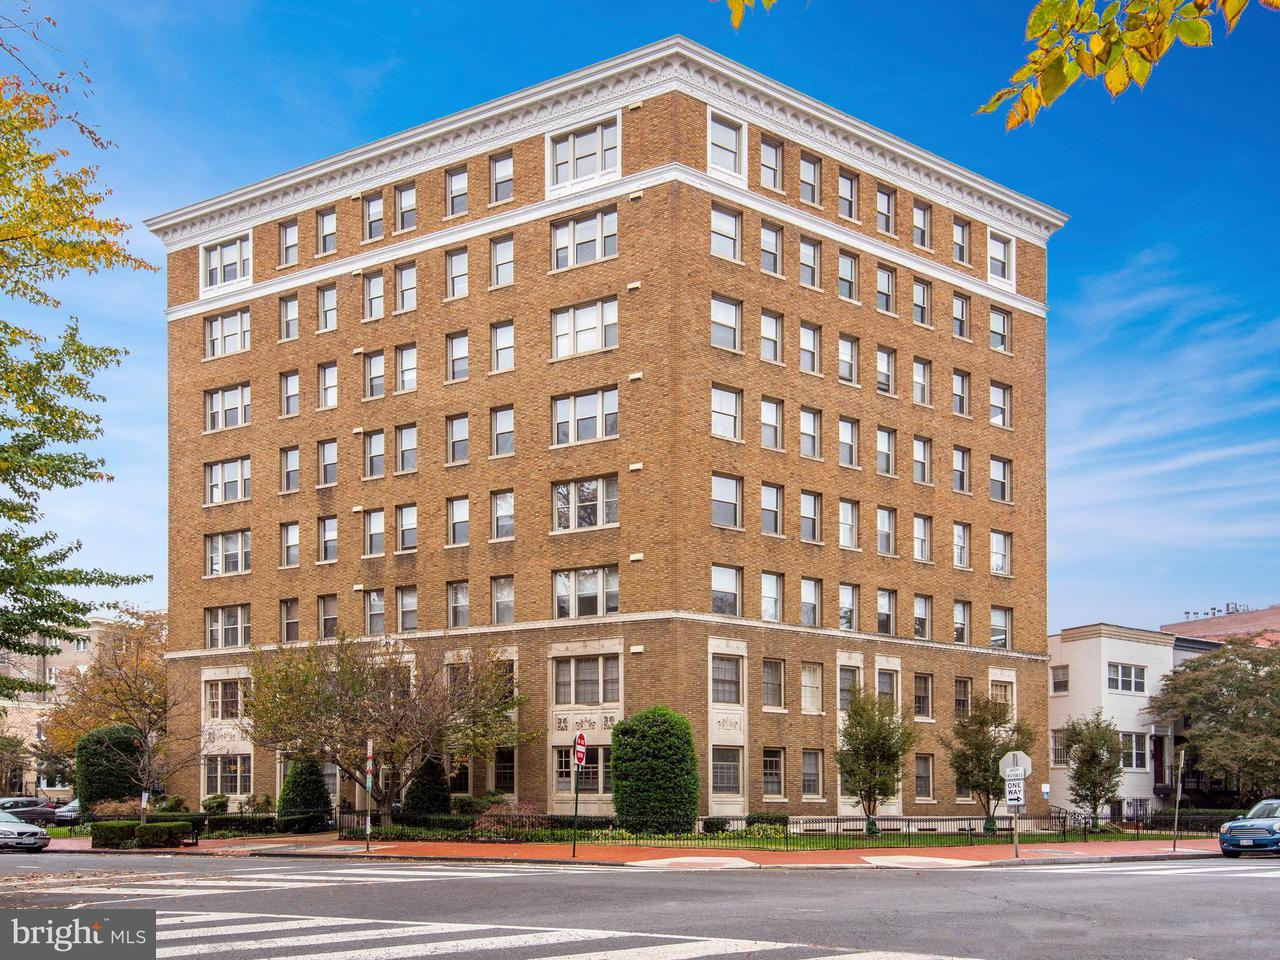 Townhouse for Sale at 1621 T ST NW #307 1621 T ST NW #307 Washington, District Of Columbia 20009 United States